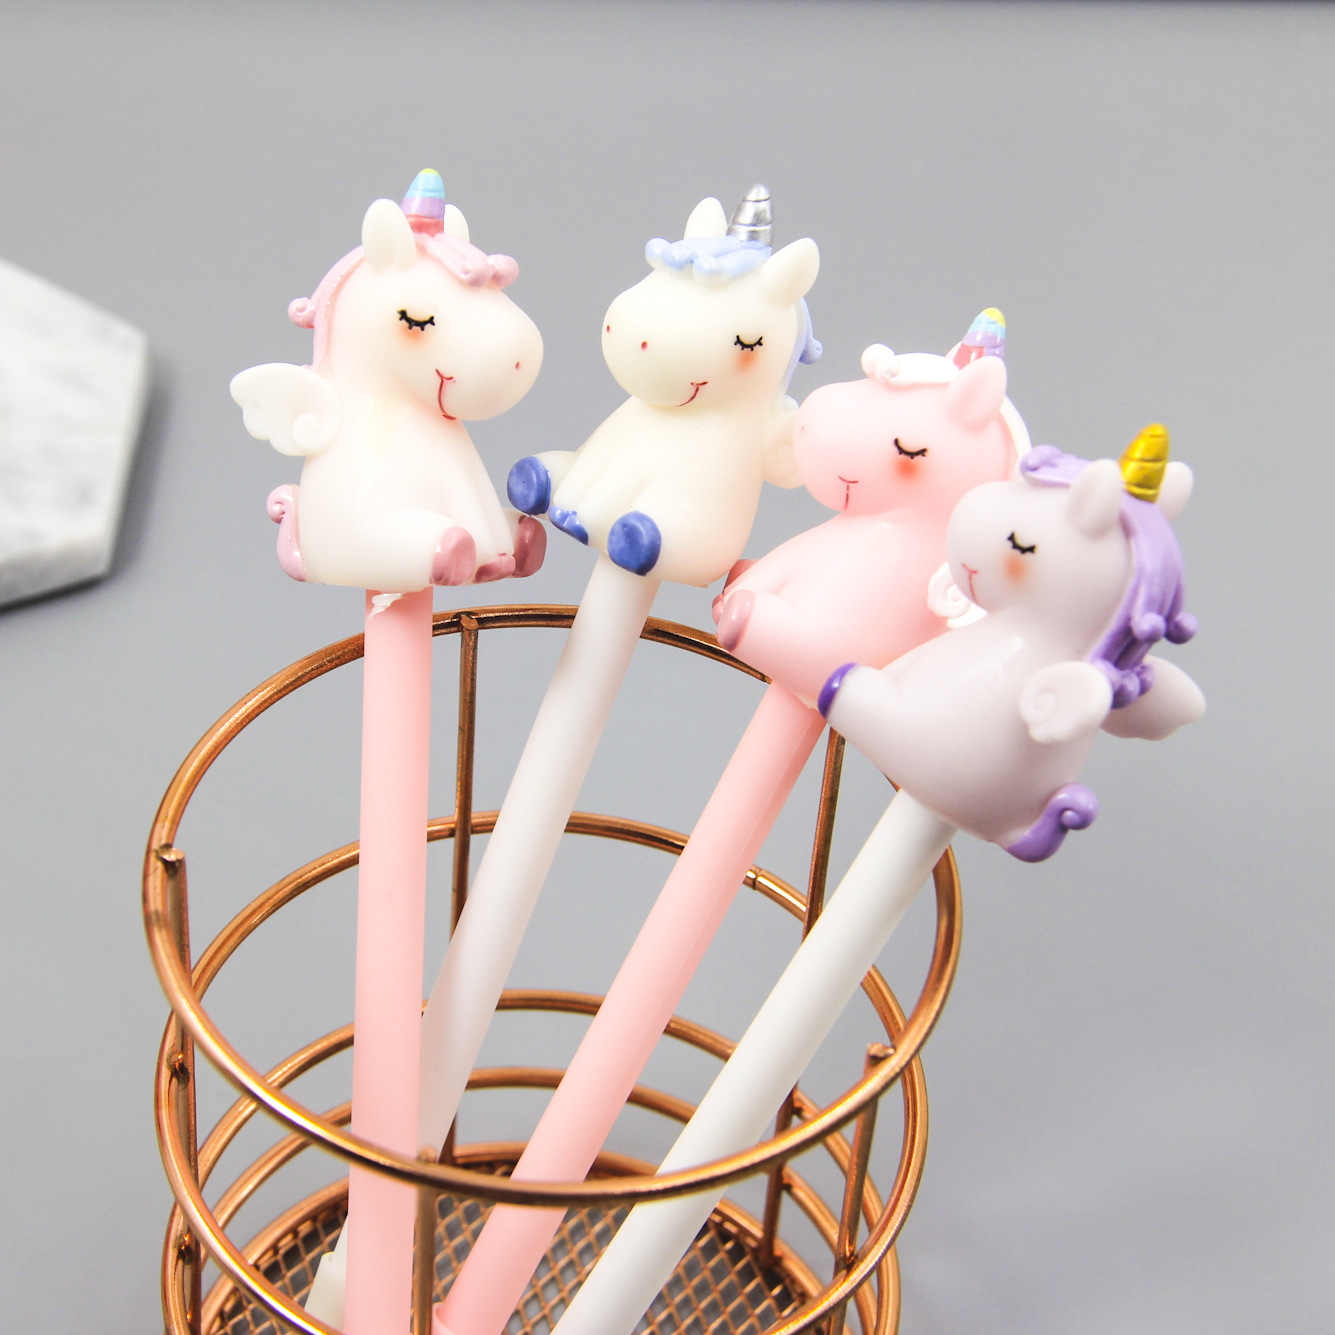 Cute Sweet Dream Unicorn Signature Gel Pen Escolar Papelaria School Office Supply Promotional Gift 1 pcs novelty cute my neighbor totoro gel ink pens signature pen escolar papelaria office school supply promotional student gift